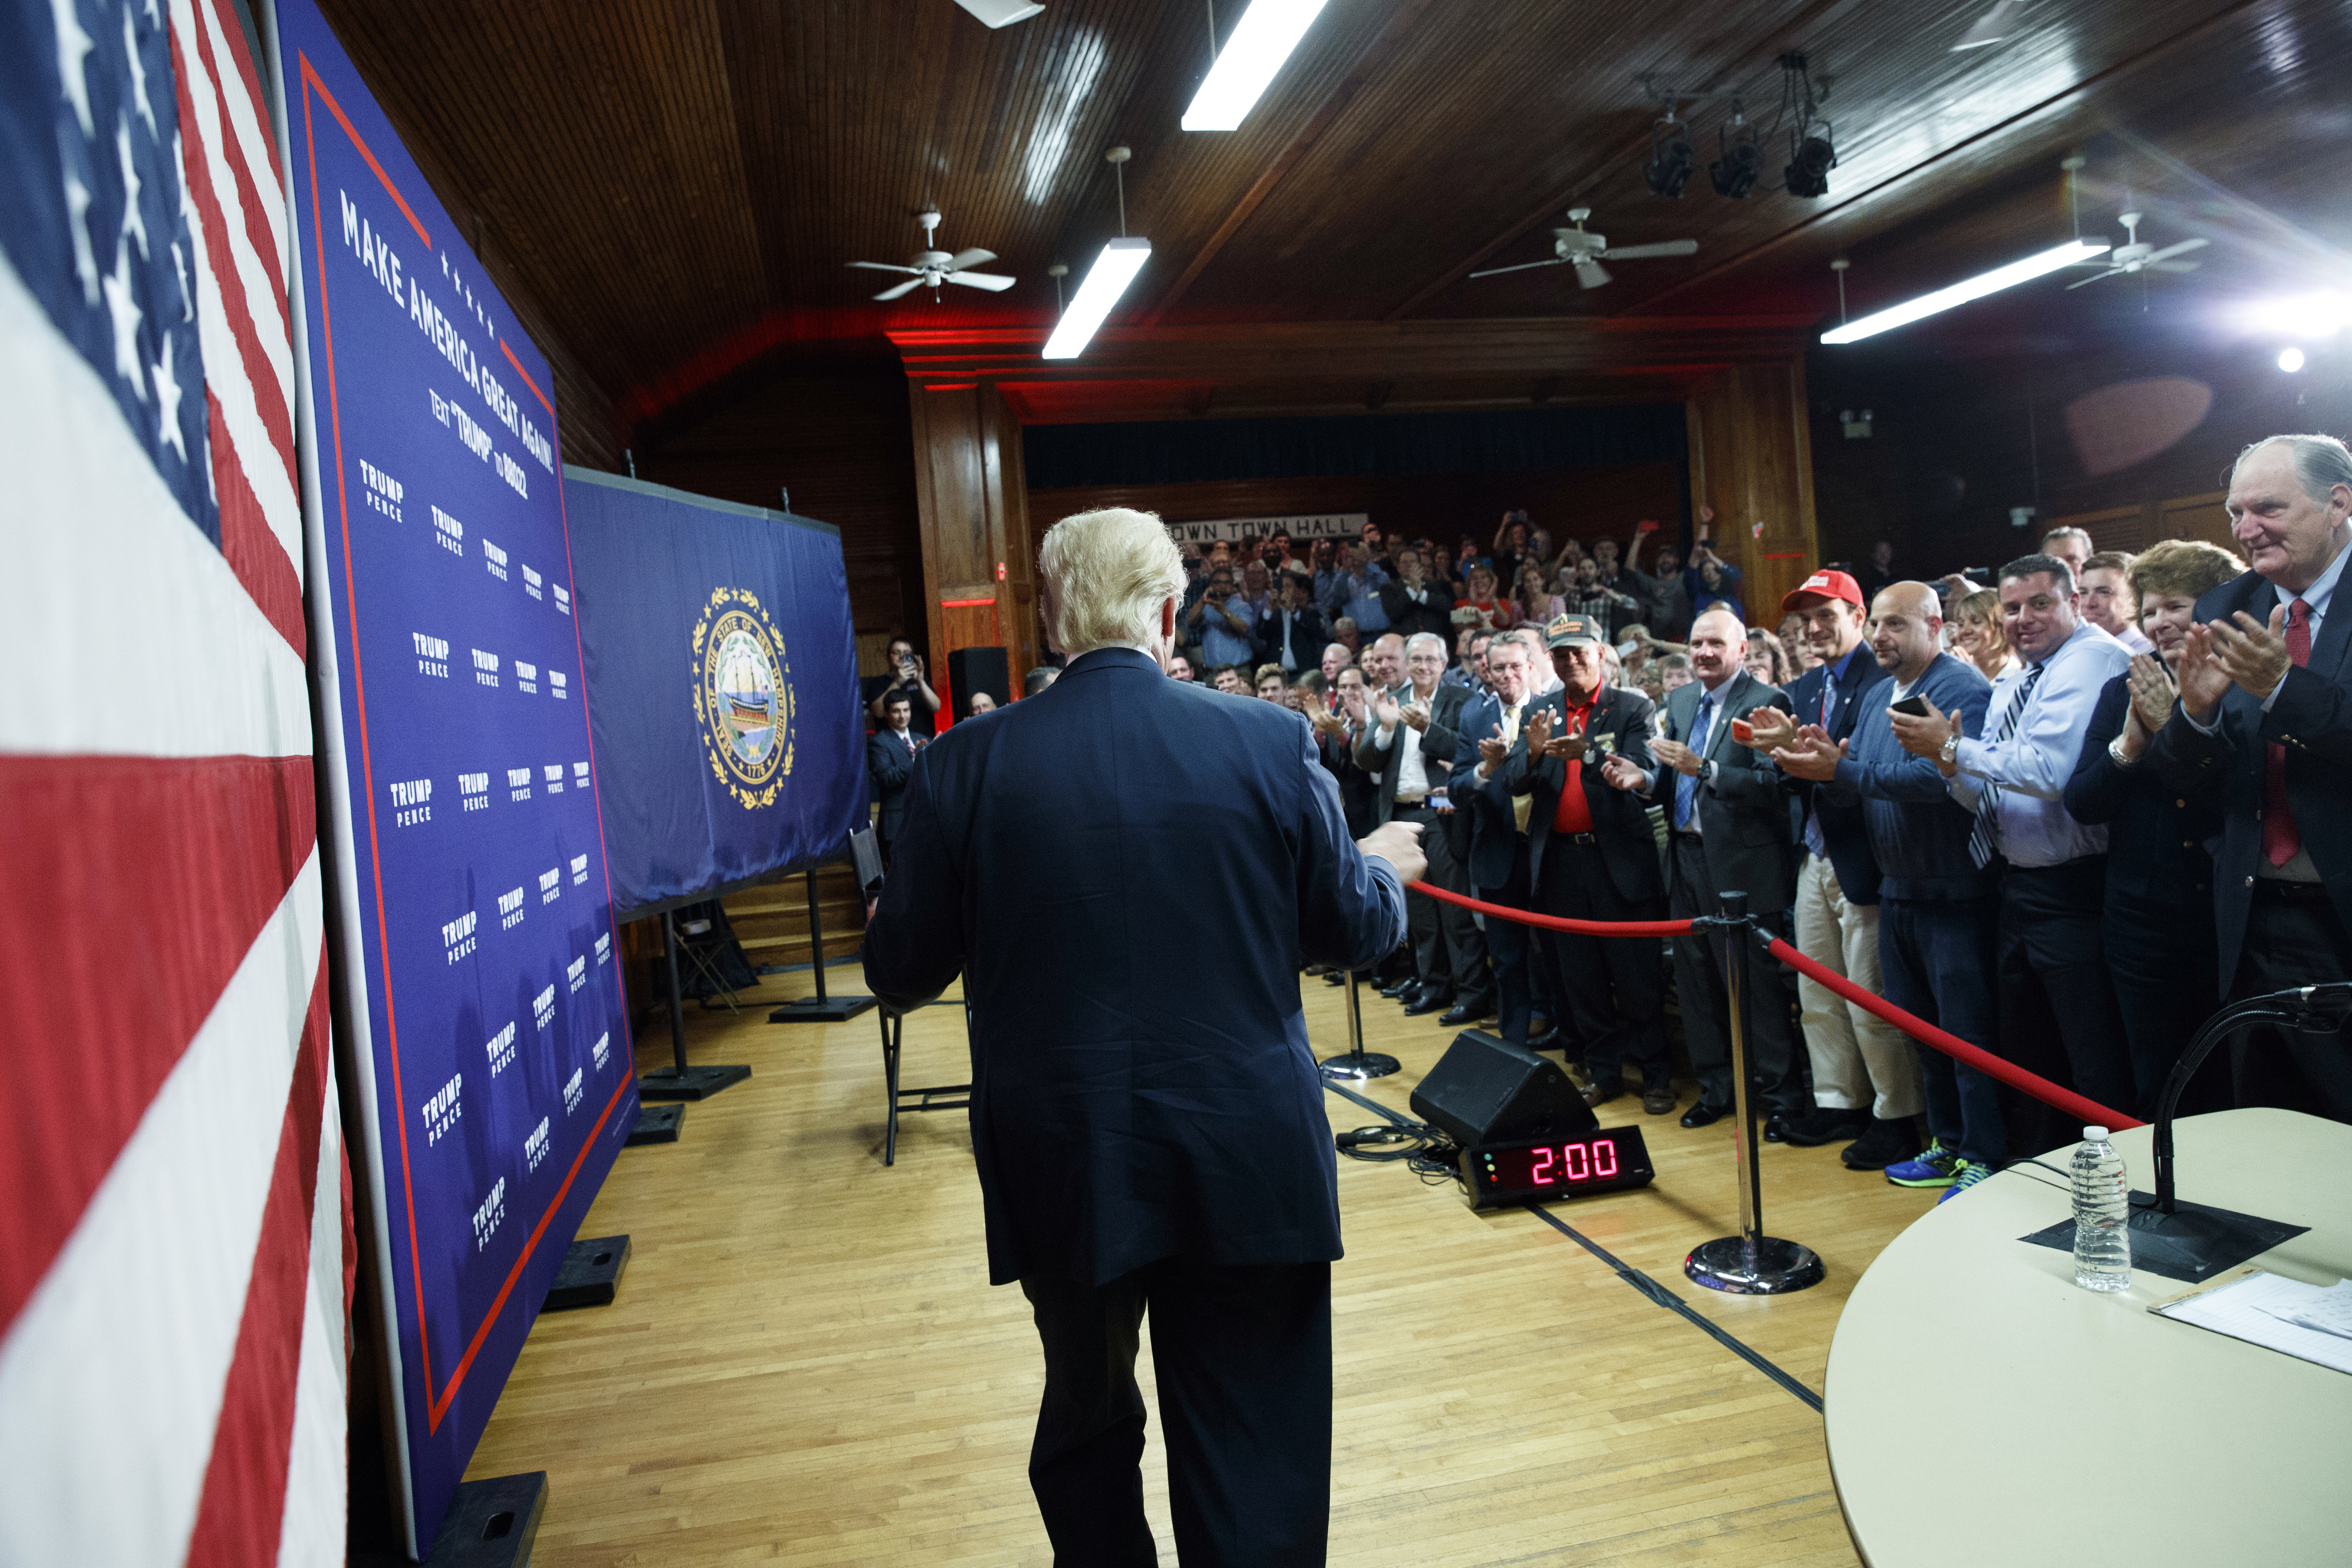 Effort to put New Hampshire GOP behind Trump faces pushback